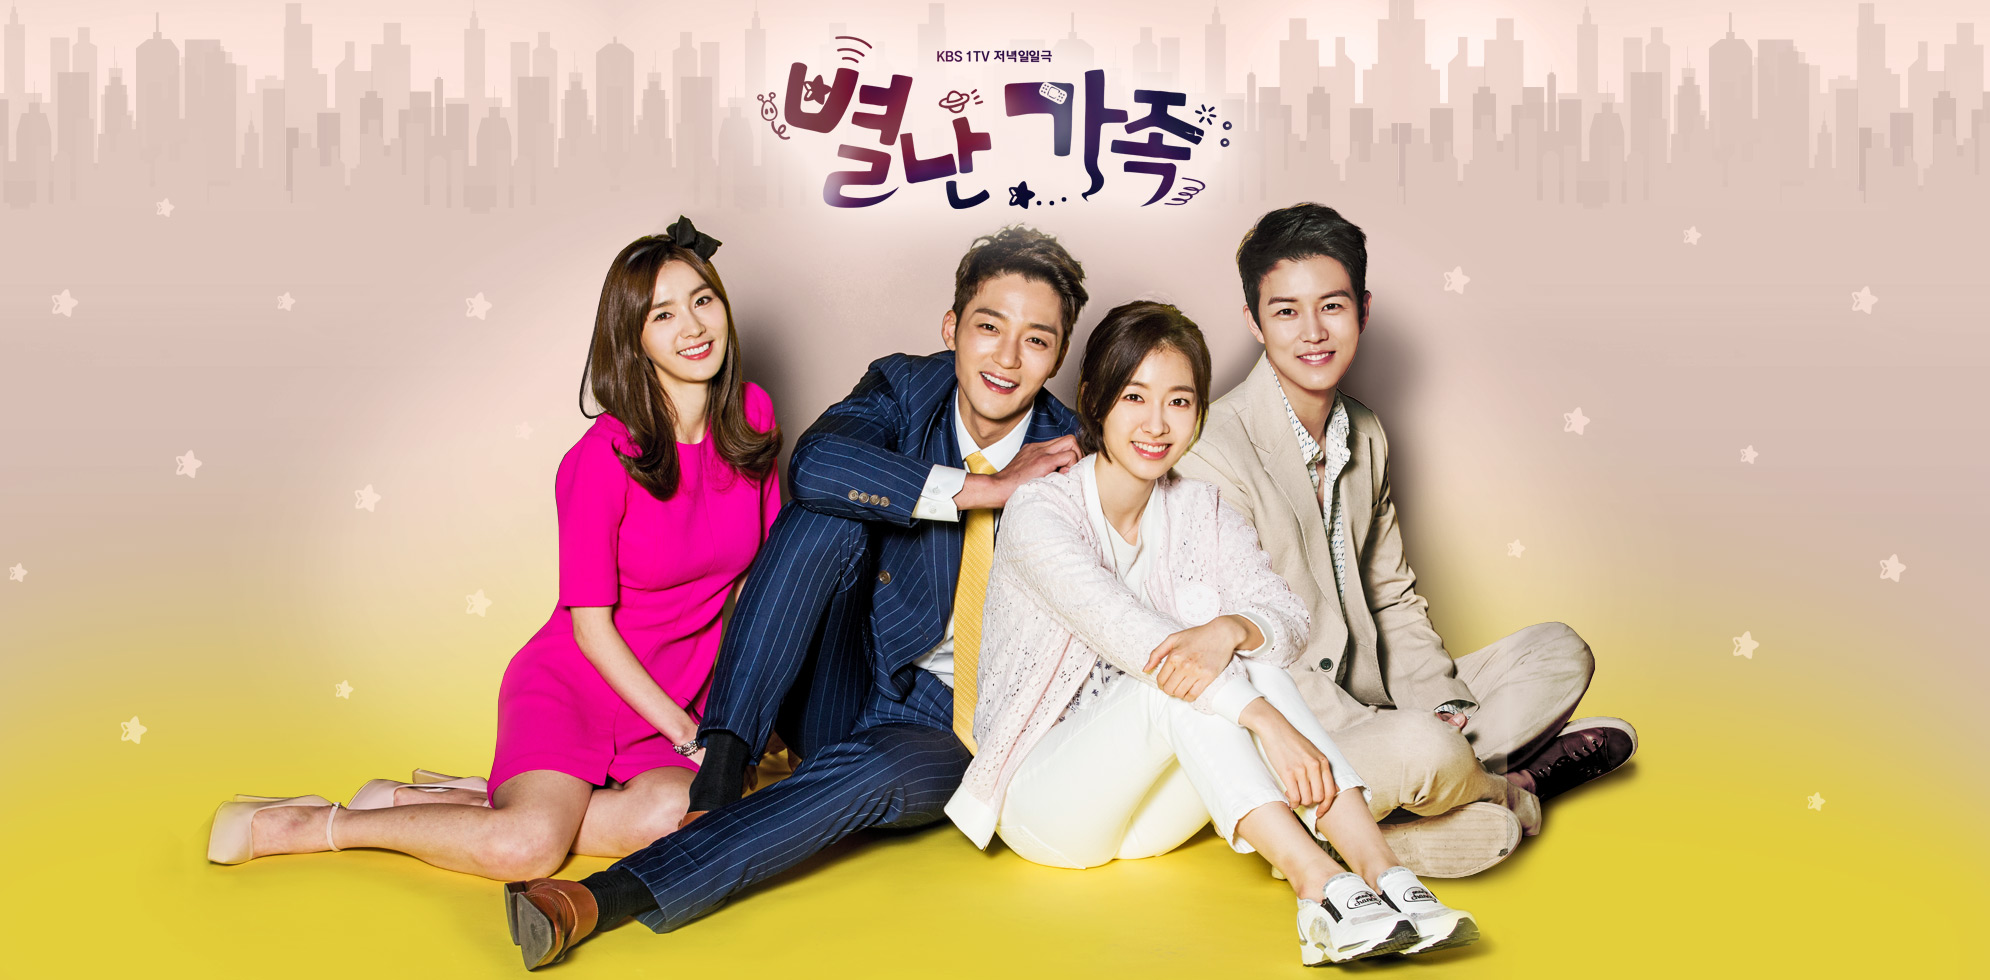 Current Daily Drama 2016] The Unusual Family 별난 가족